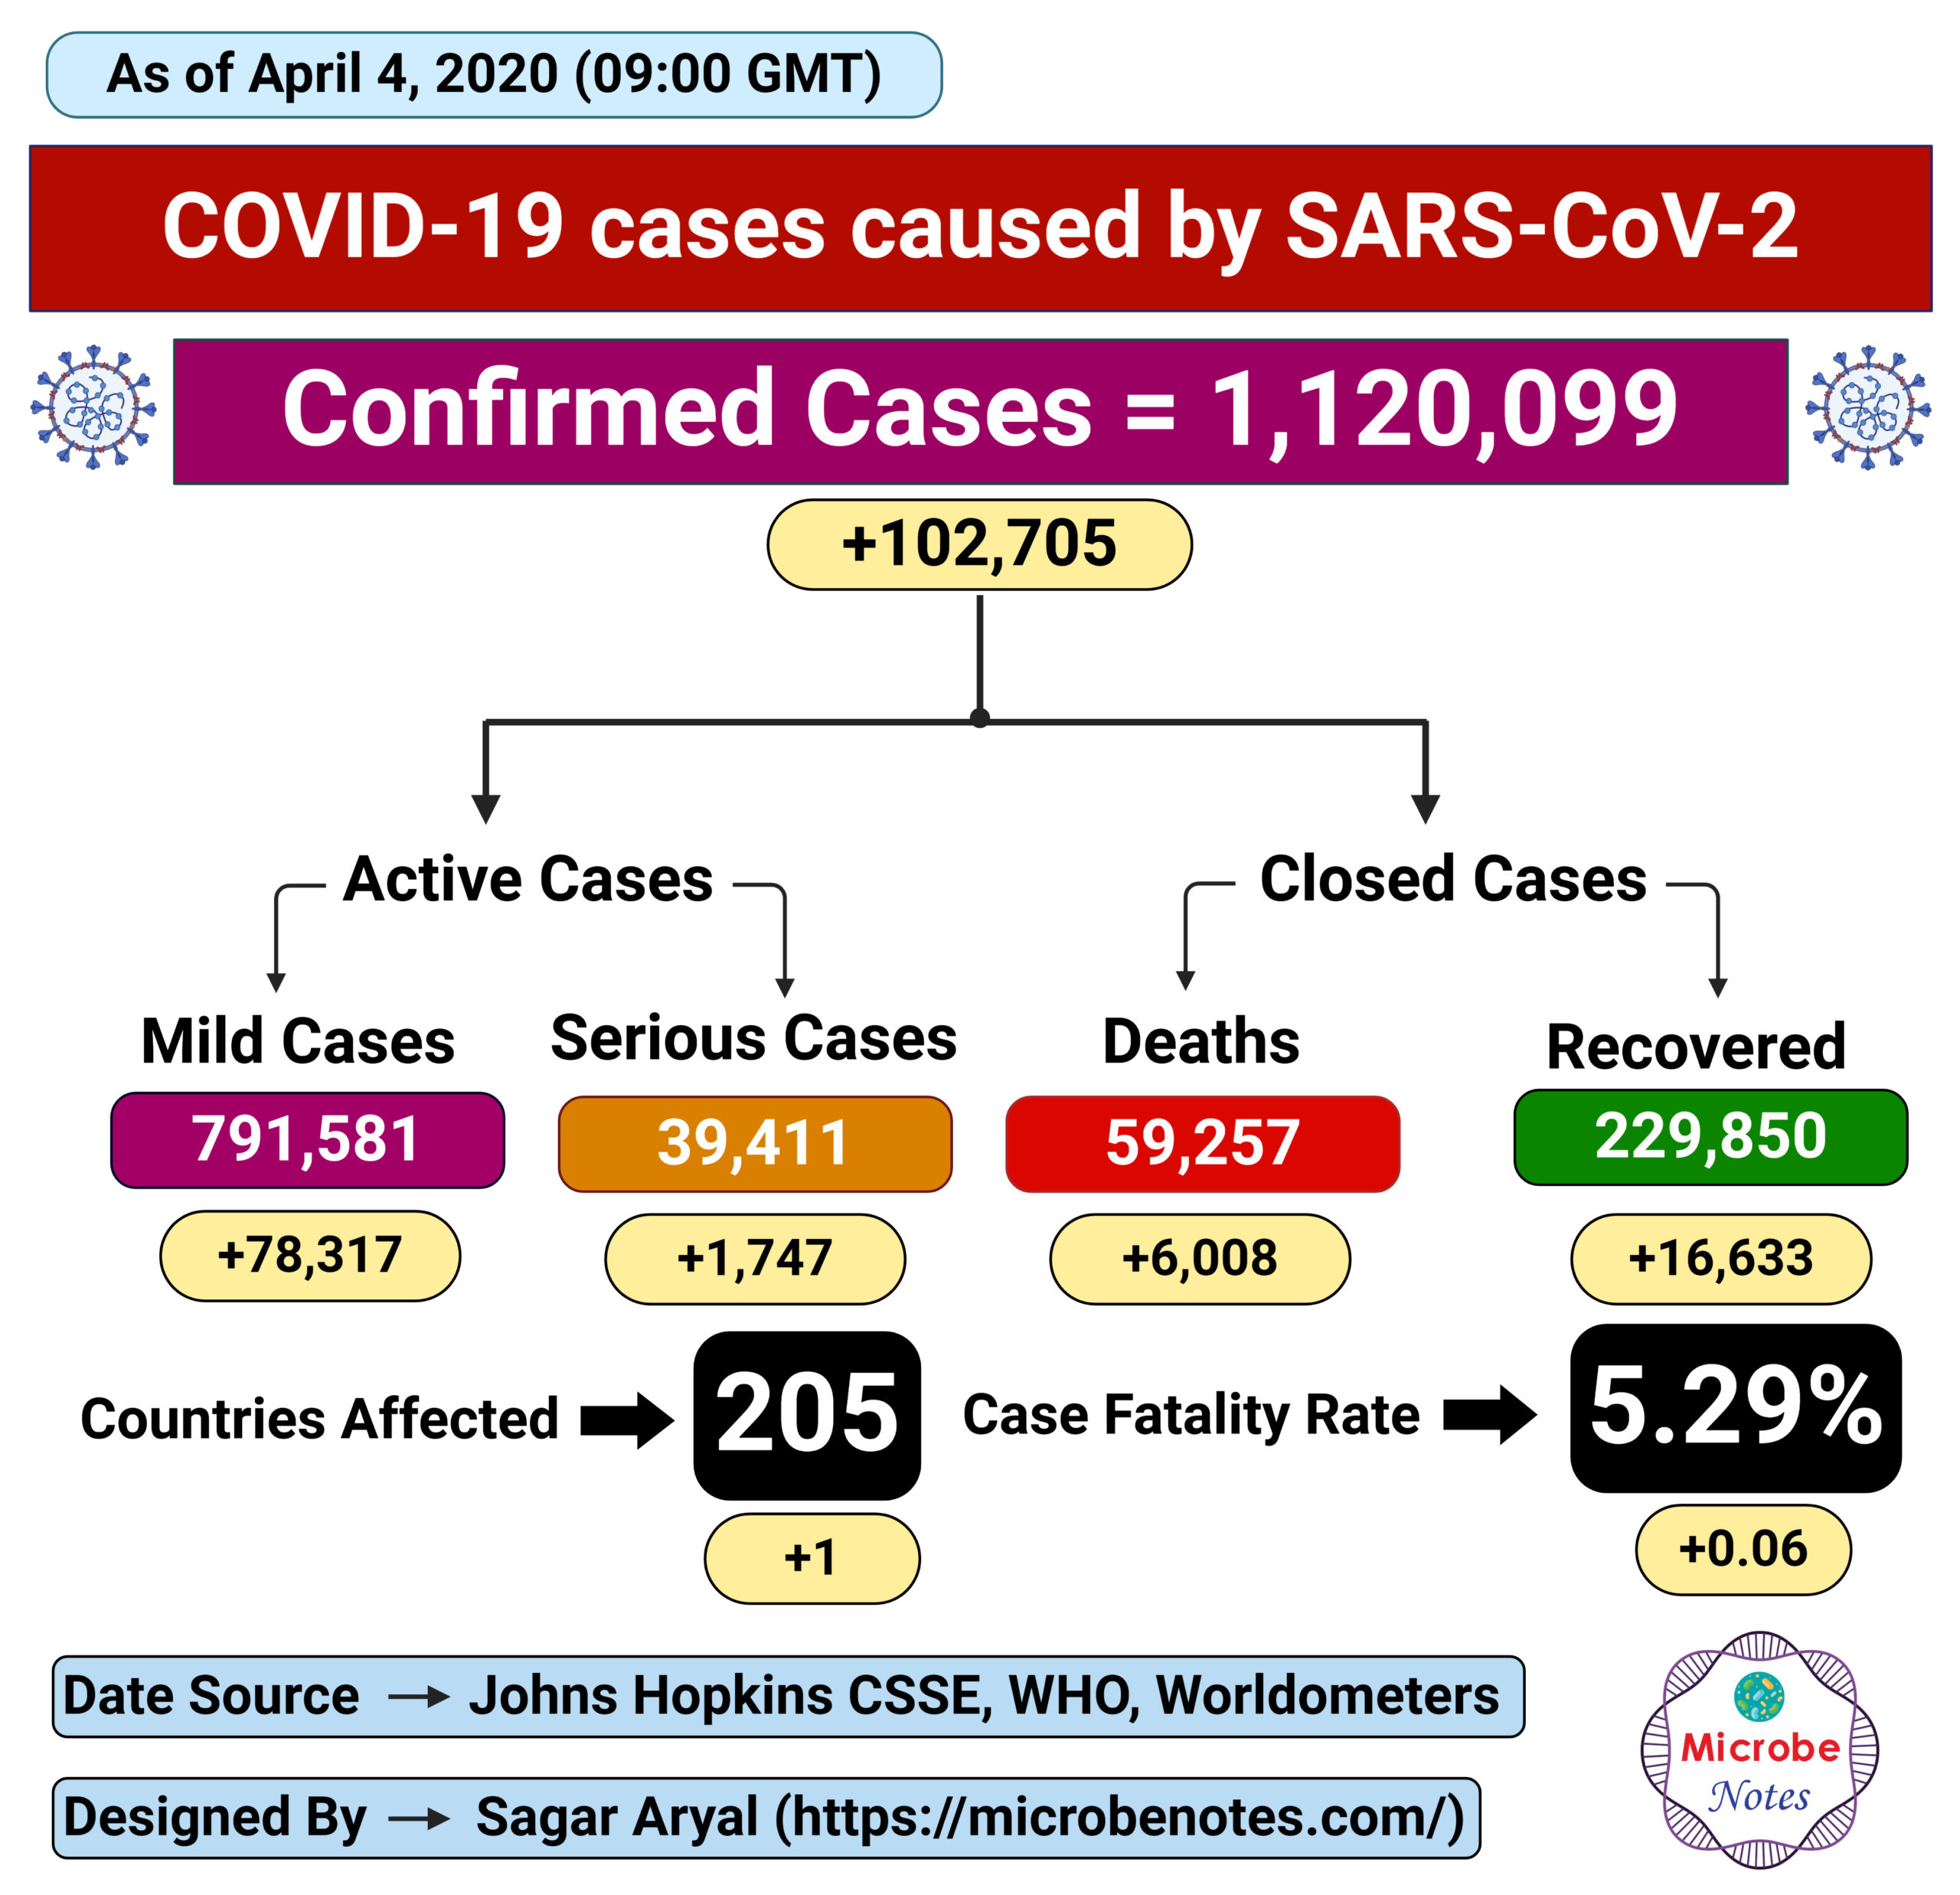 Epidemiology of COVID-19 caused by SARS-CoV-2 as of April 4, 2020